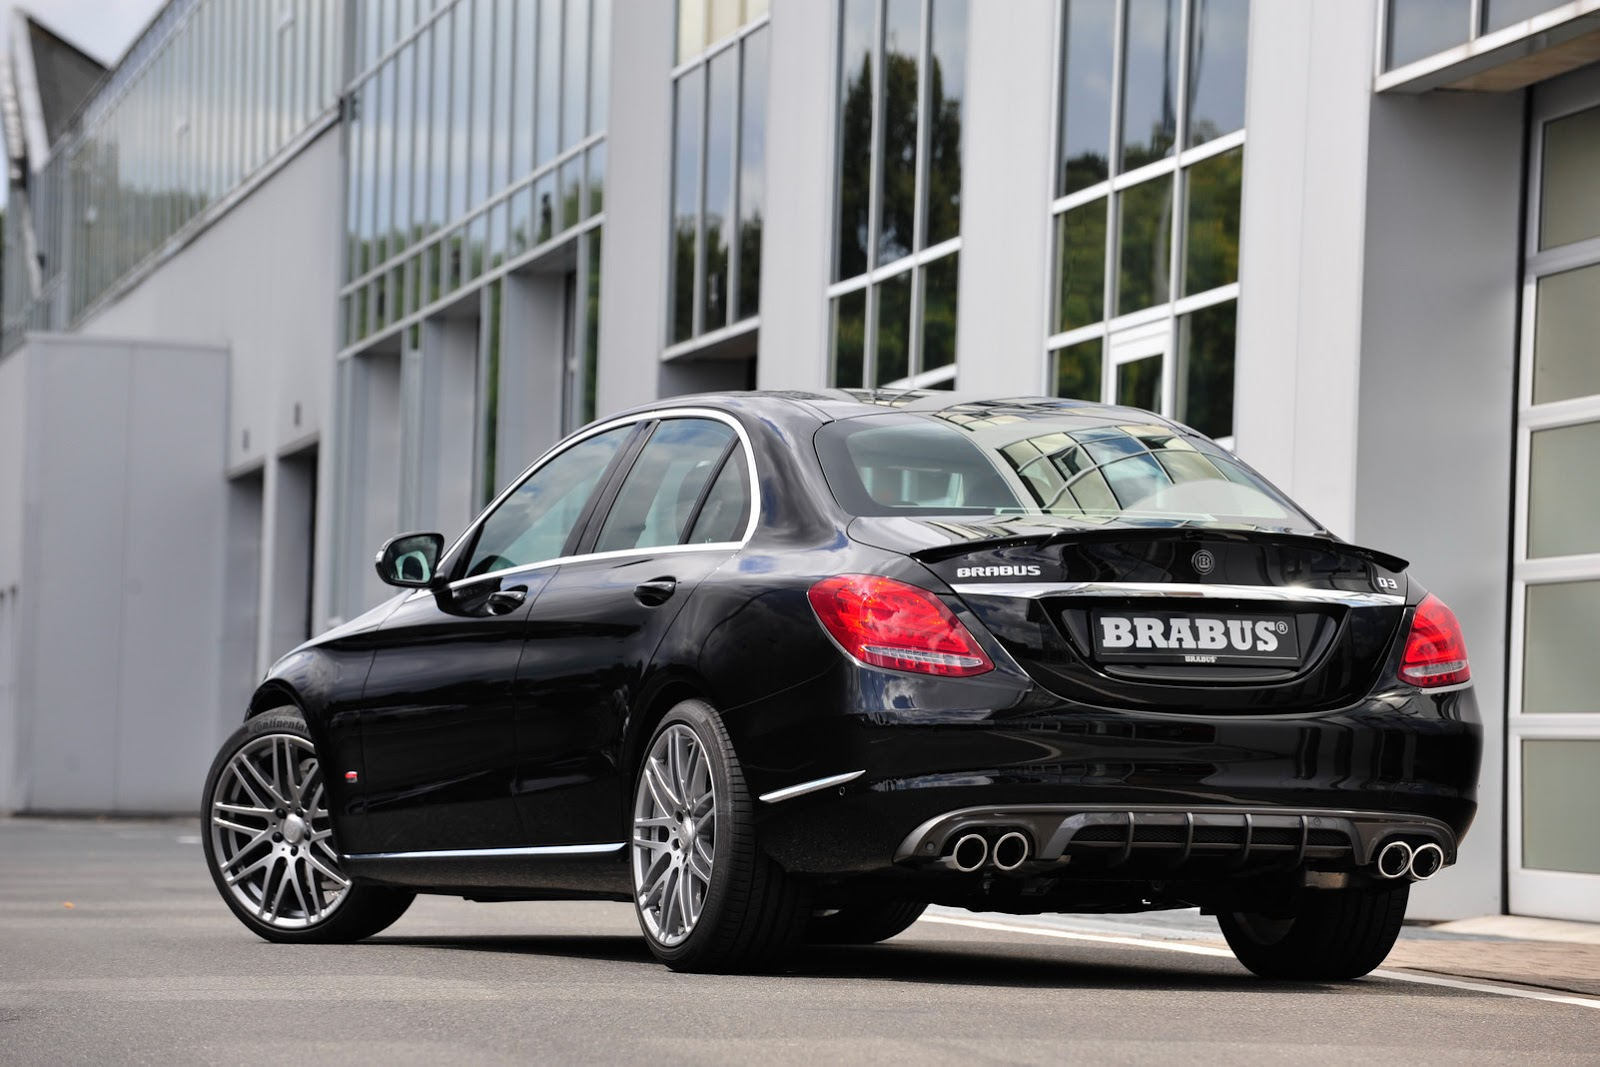 brabus tunes into new 2015 mercedes benz c class w205 41. Black Bedroom Furniture Sets. Home Design Ideas